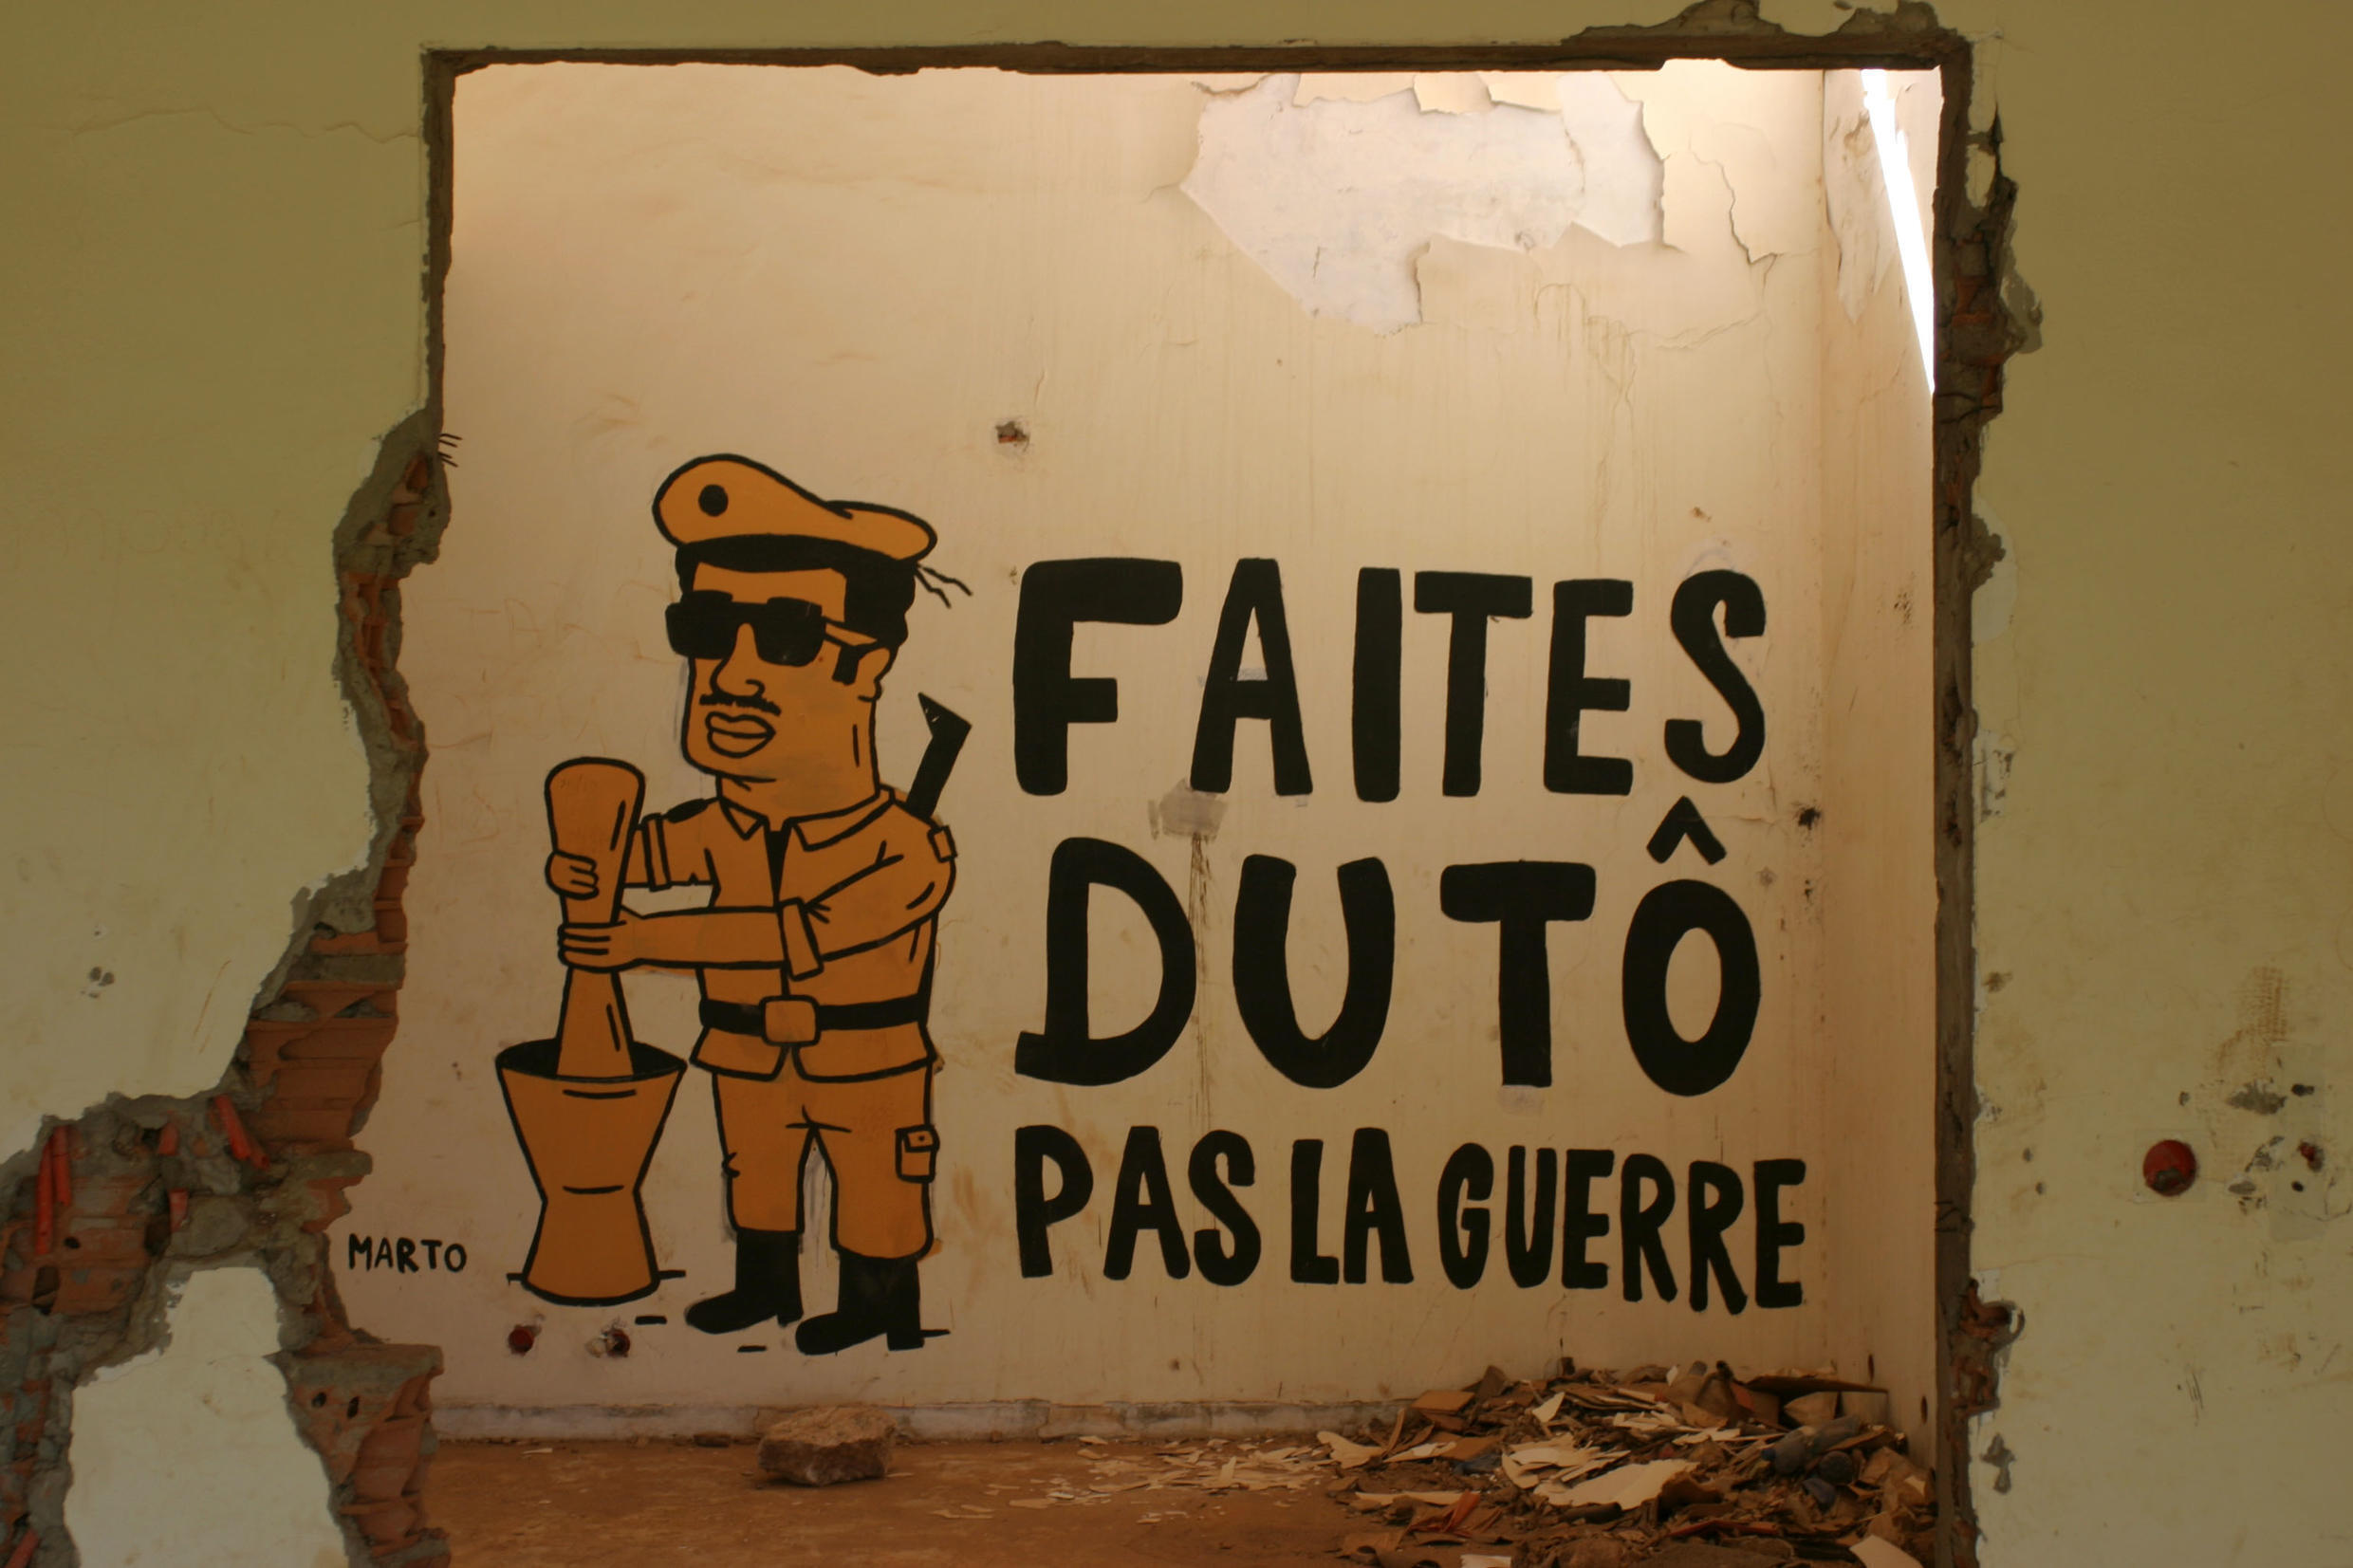 Marto's work in Francois Compaore's looted house. During the failed coup attempt there were fears fighting could break out between the presidential guard and army.